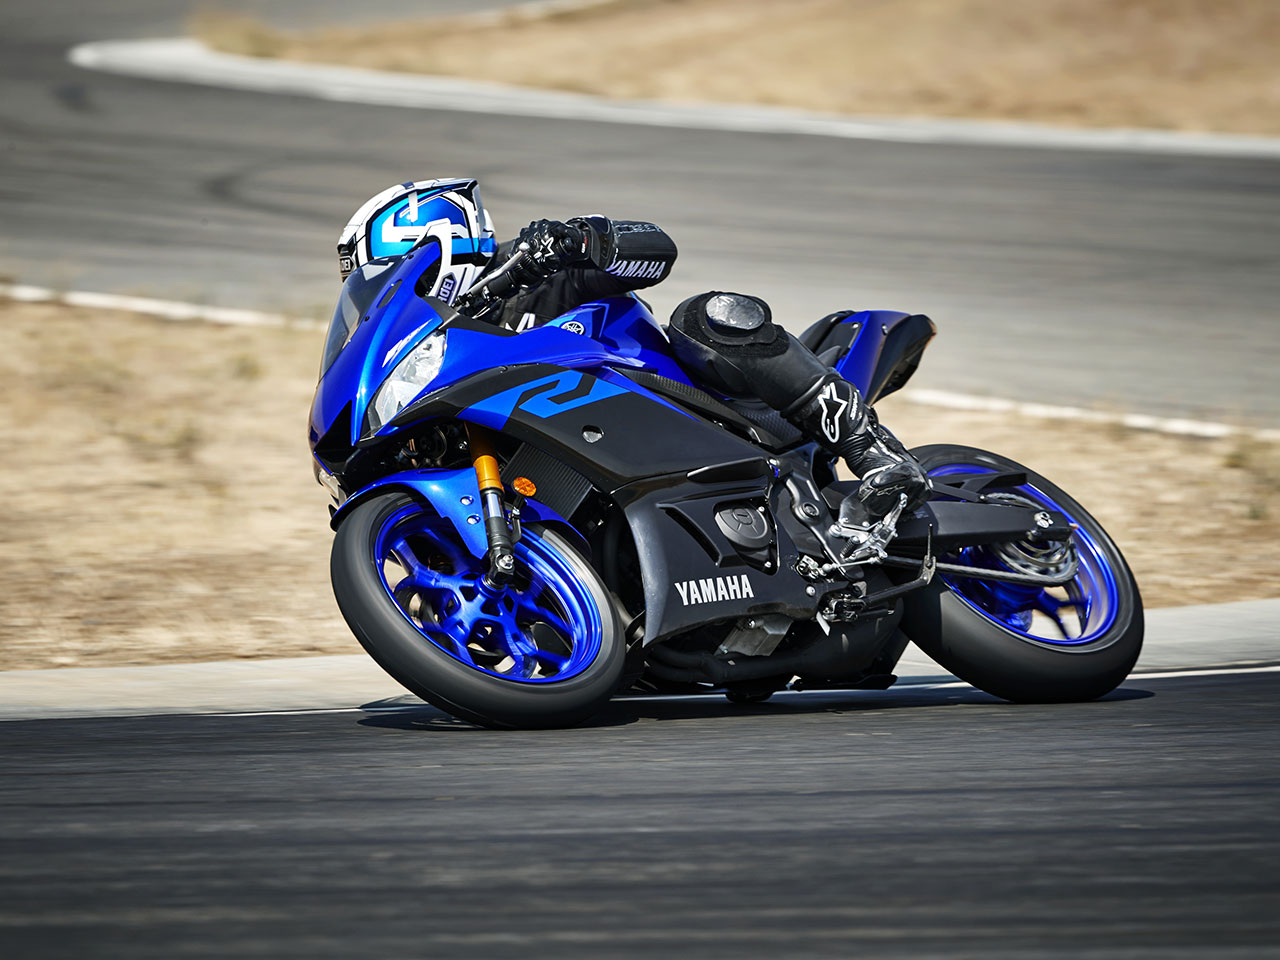 Yamaha YZF-R3 motorcycle riding on the road